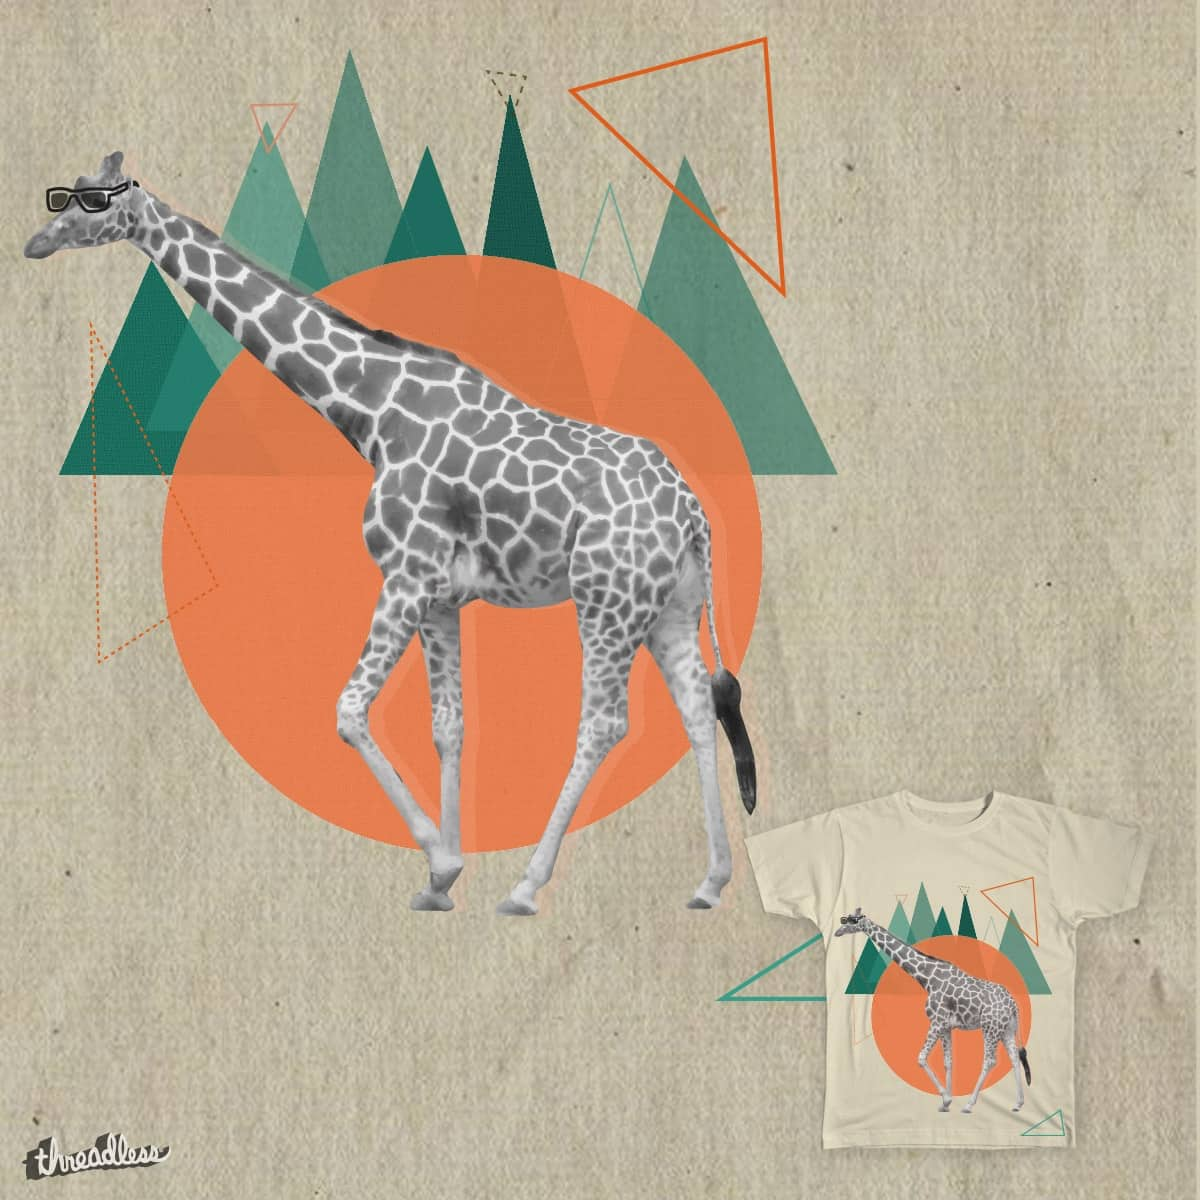 Giraffe walk by Parin on Threadless